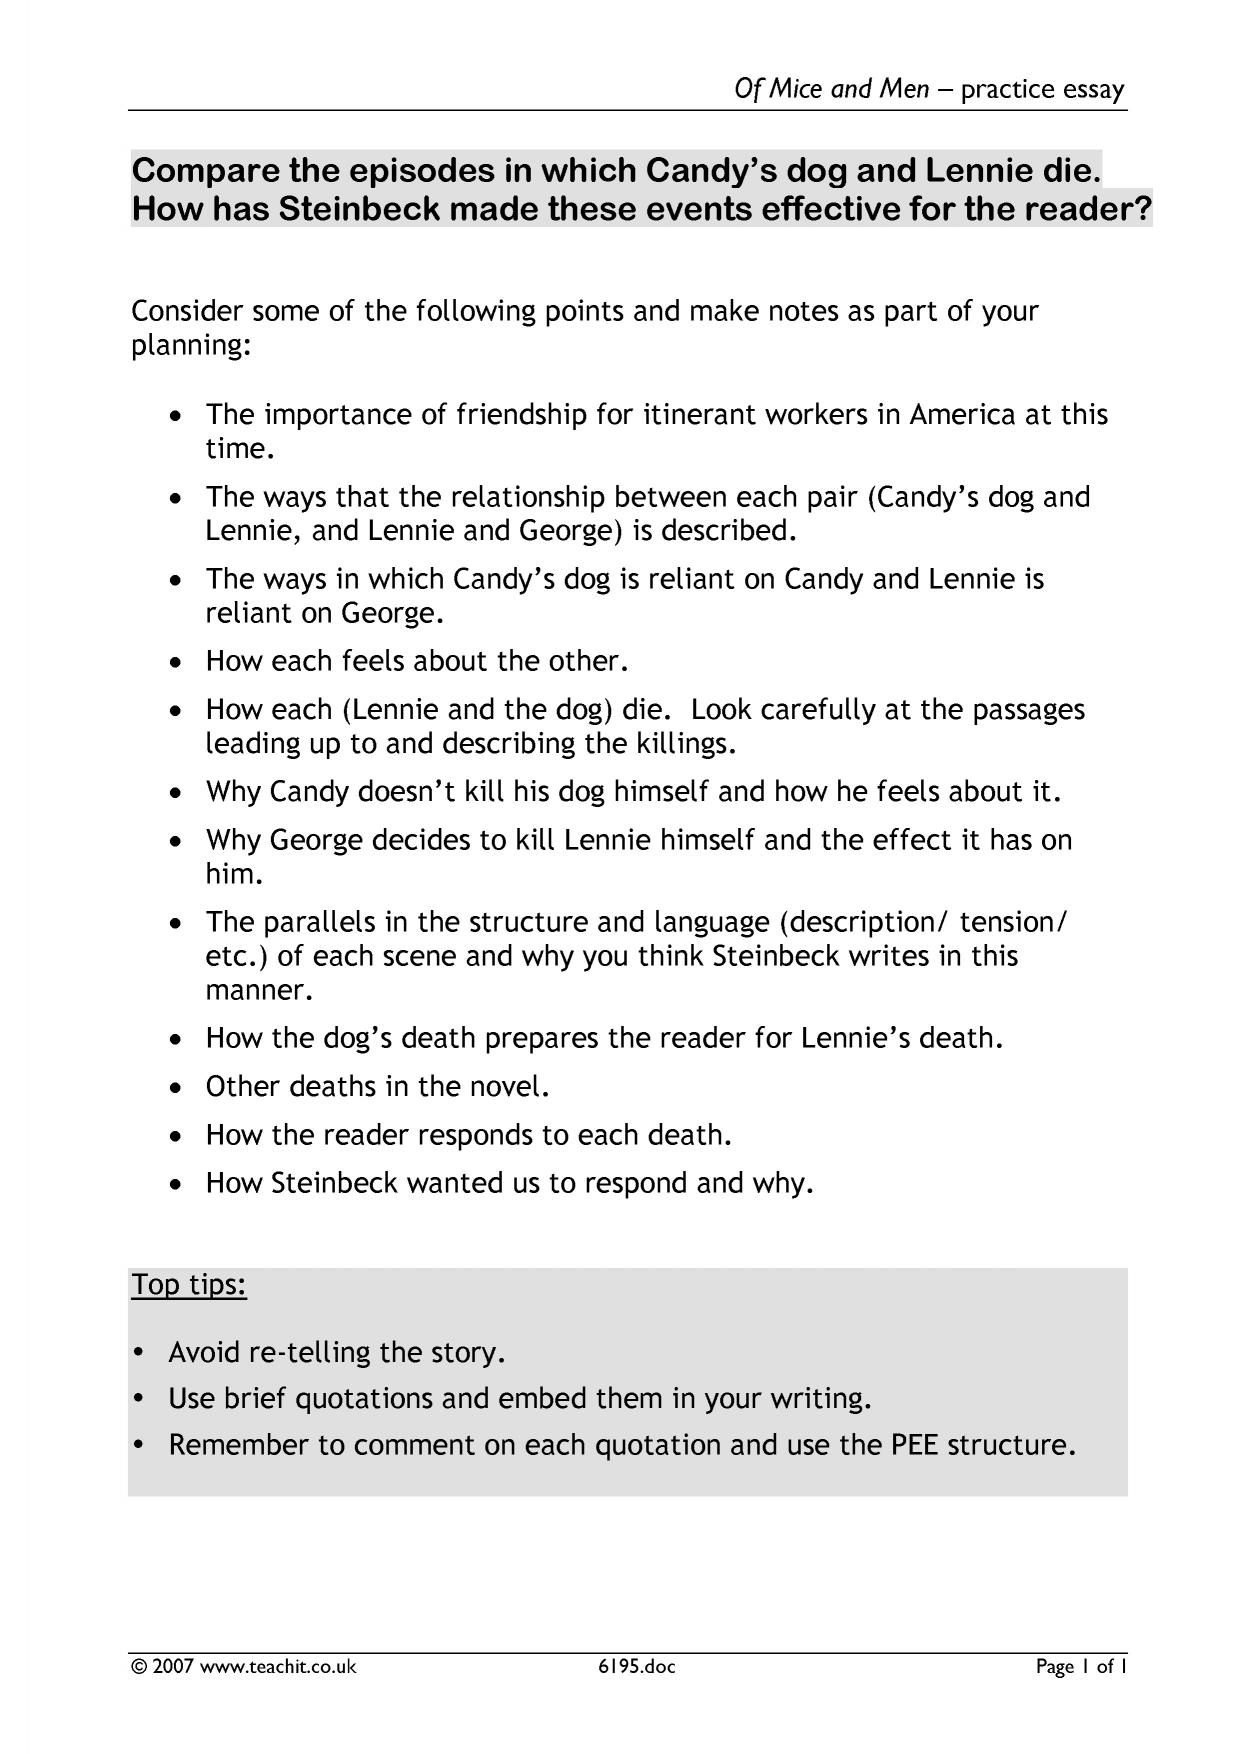 Of mice and men power essay